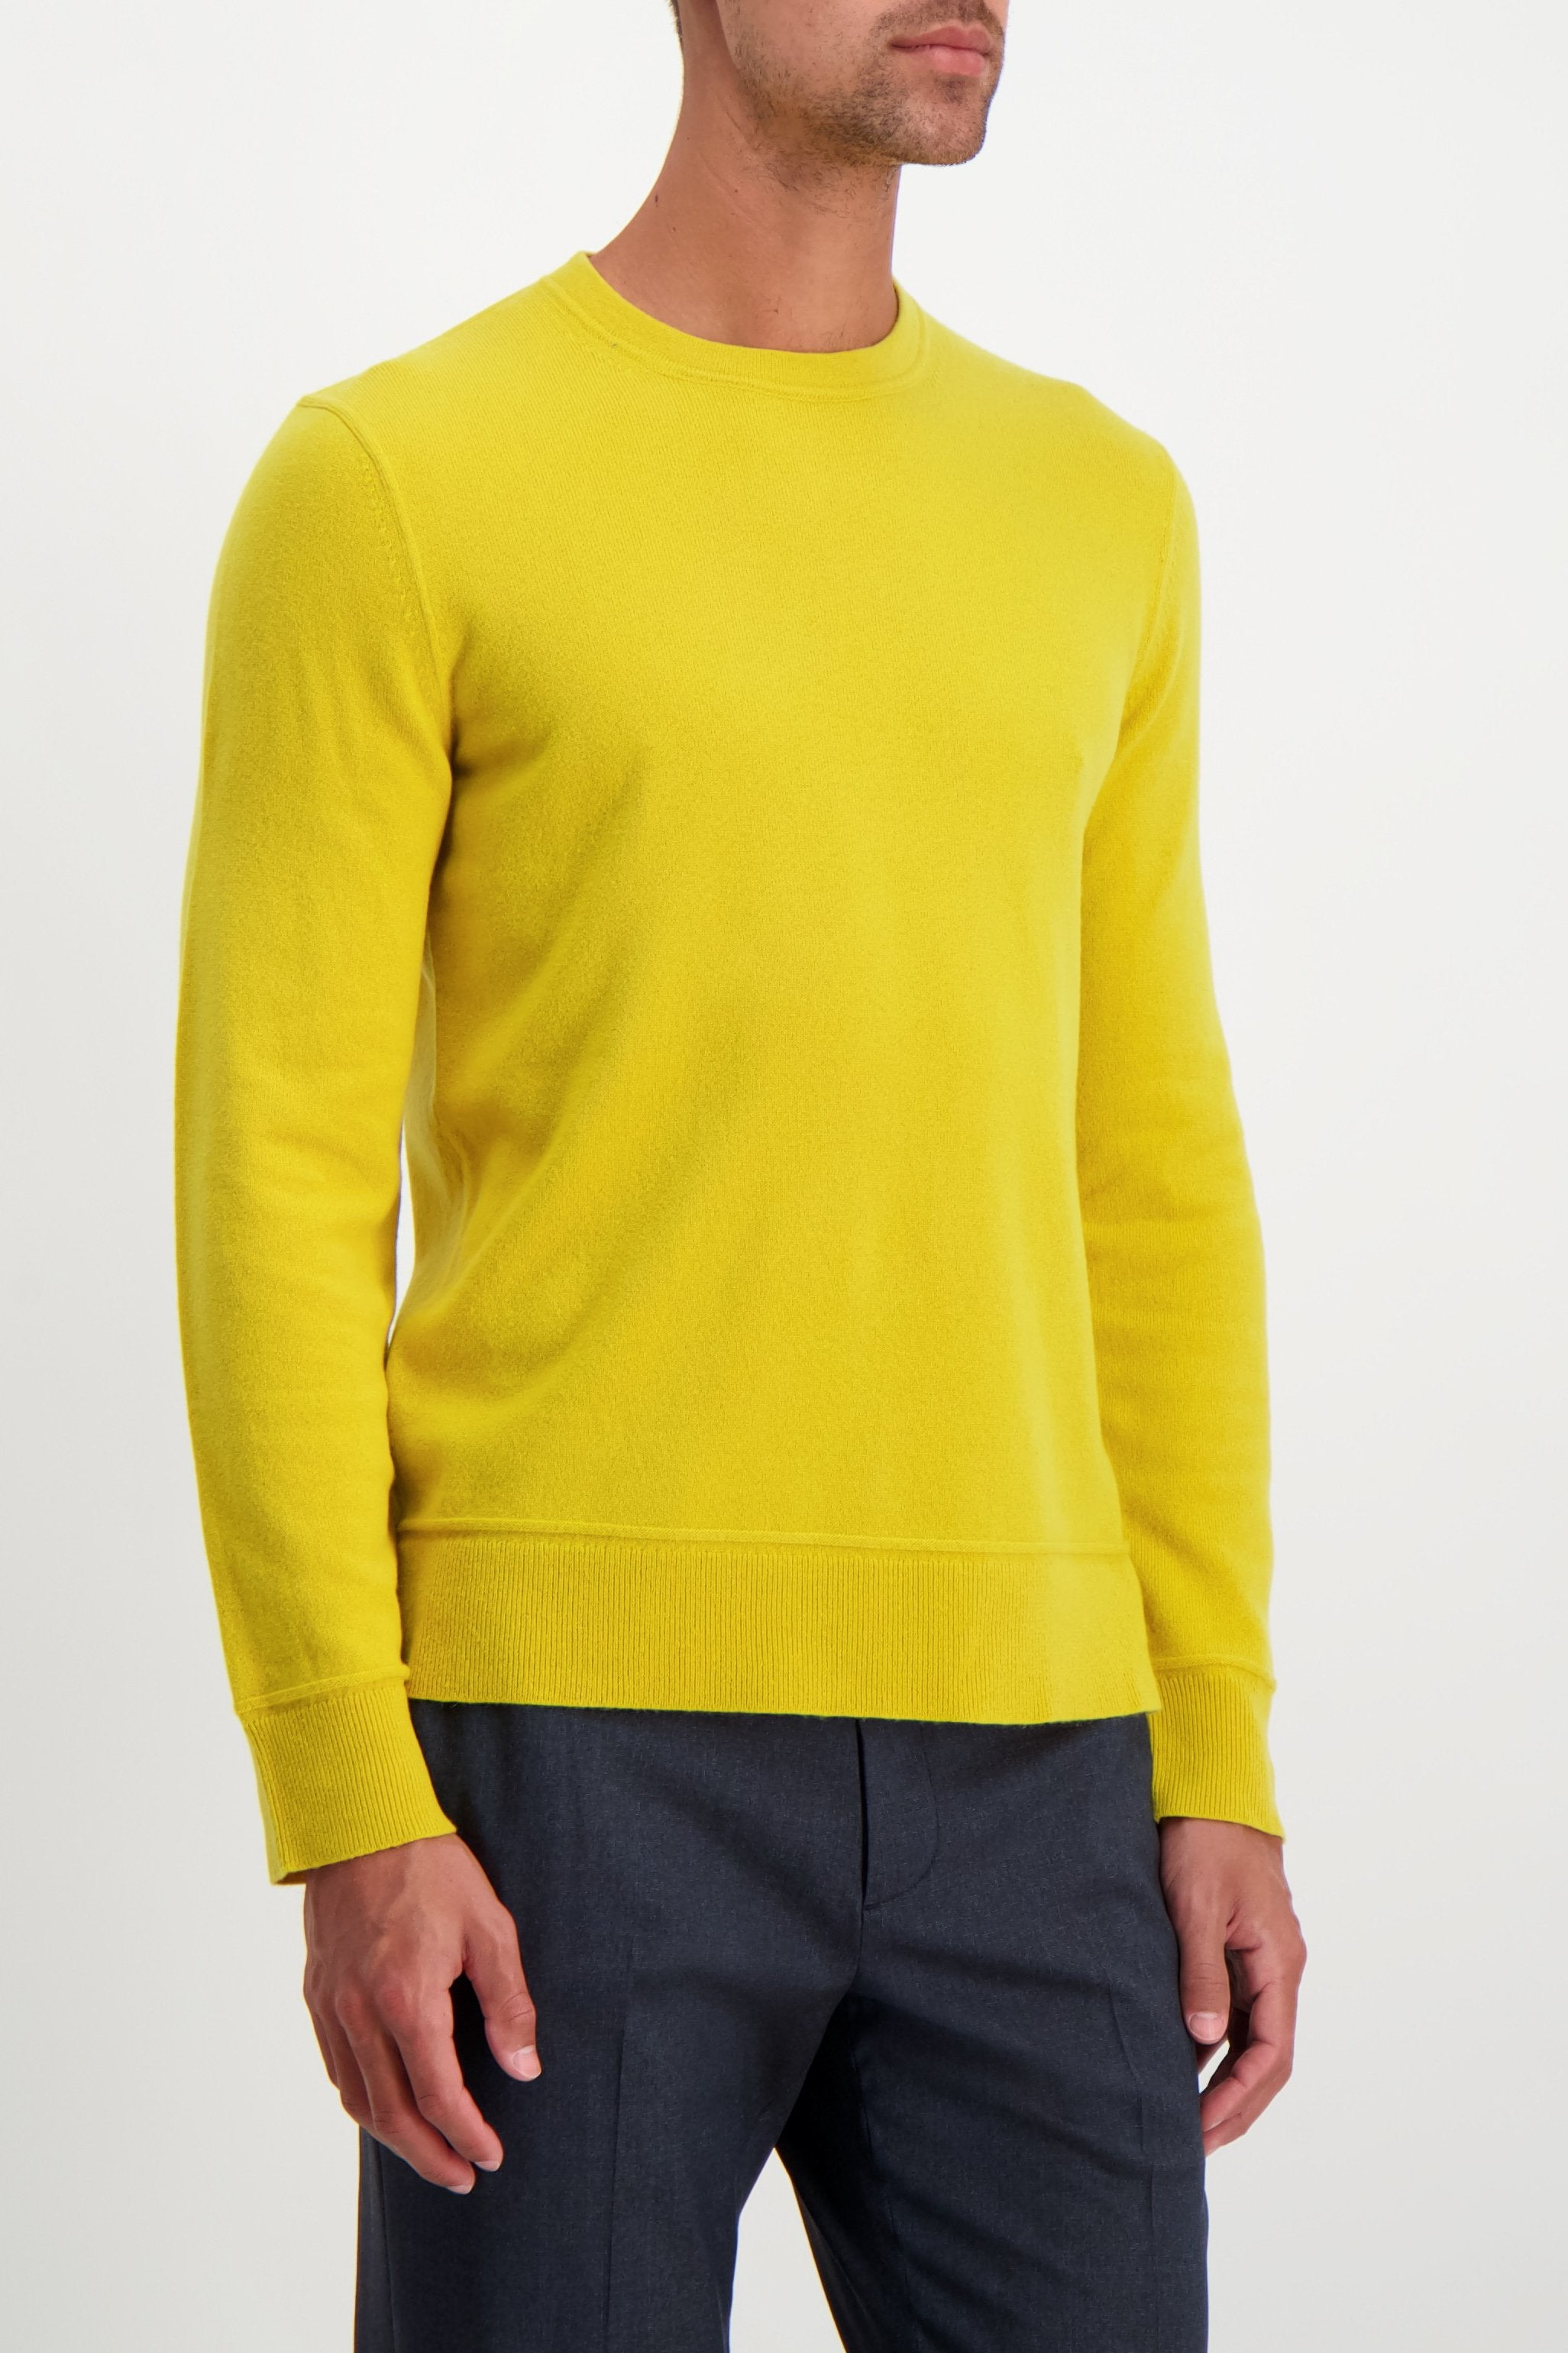 Front Crop Image Of Model Wearing Theory Men's Hilles Crewneck Citrus